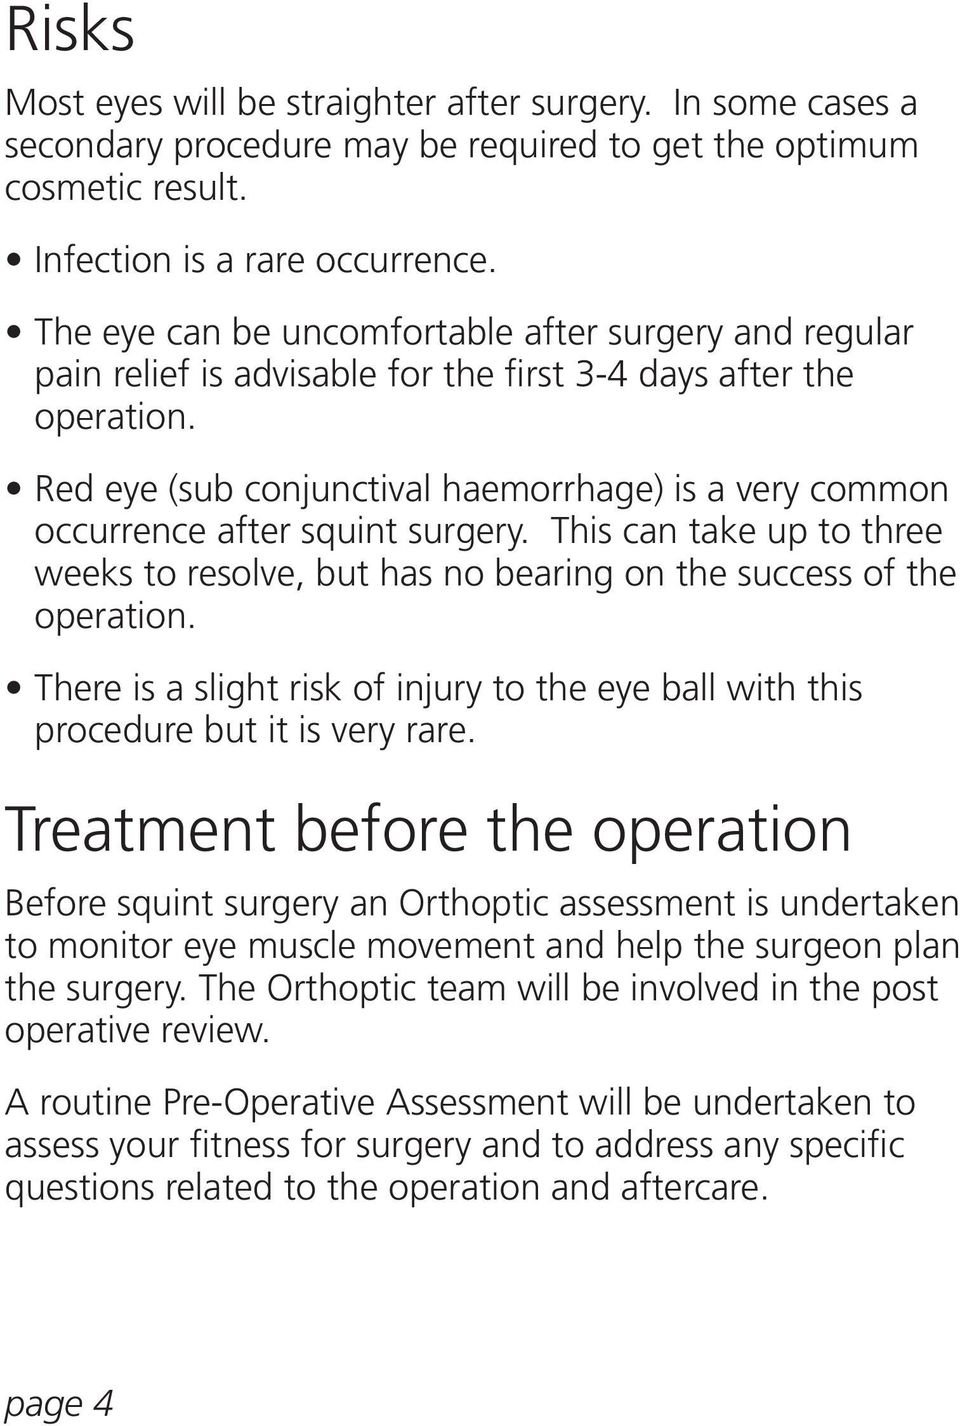 Red eye (sub conjunctival haemorrhage) is a very common occurrence after squint surgery. This can take up to three weeks to resolve, but has no bearing on the success of the operation.